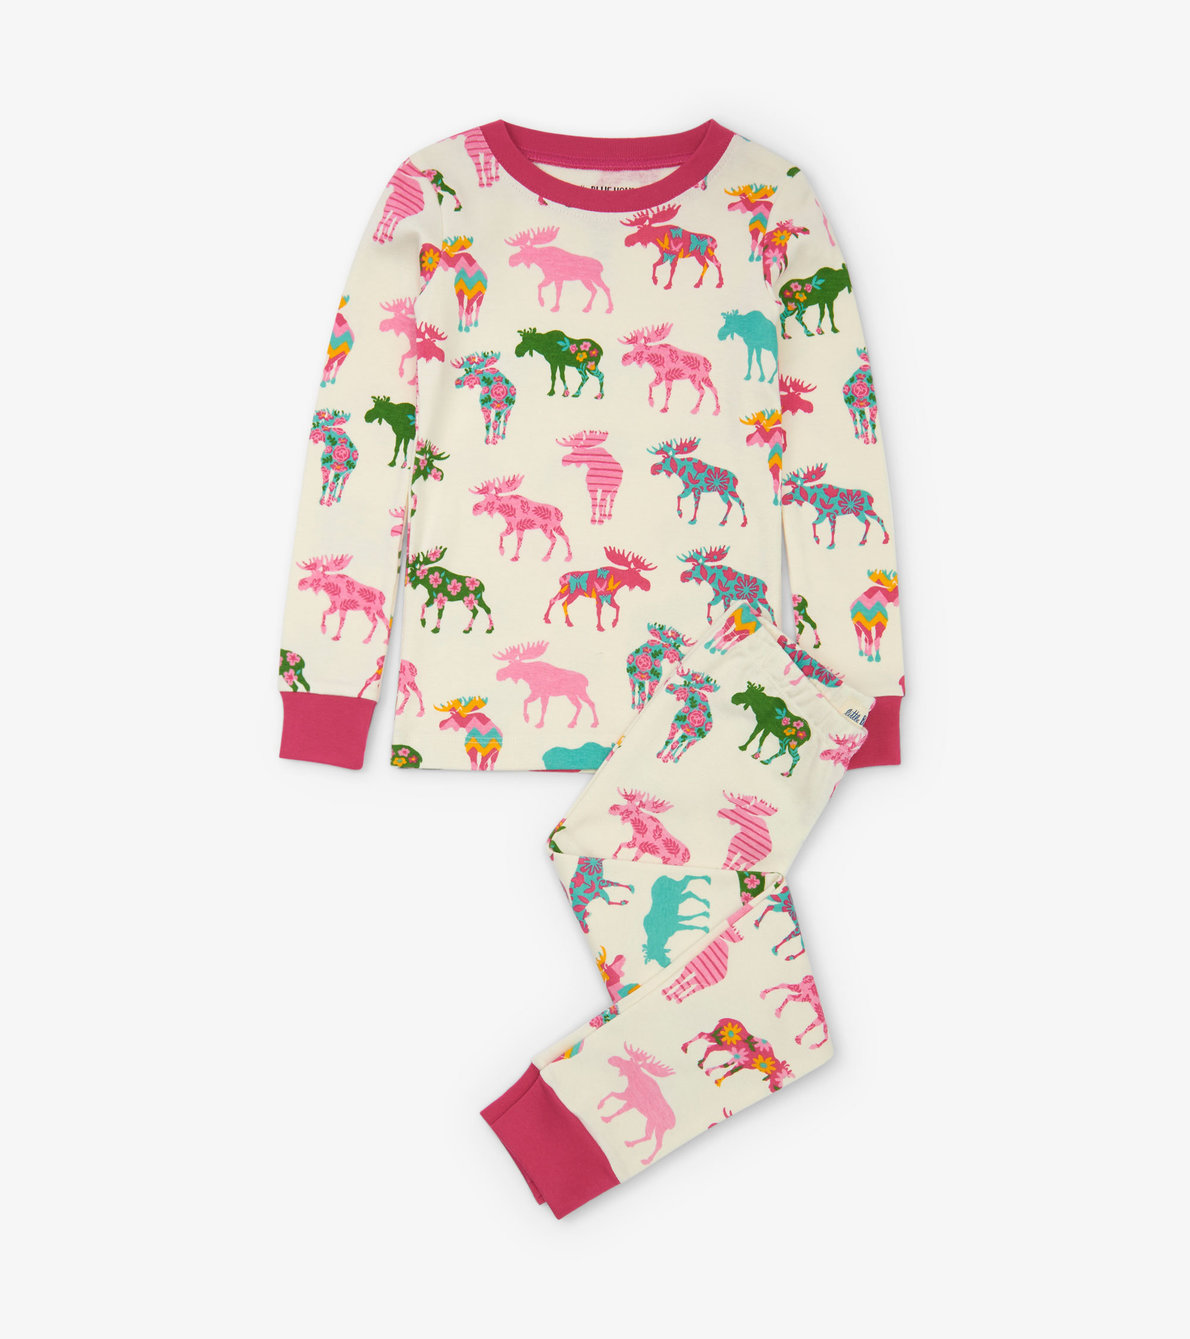 View larger image of Patterned Moose Kids Pajama Set